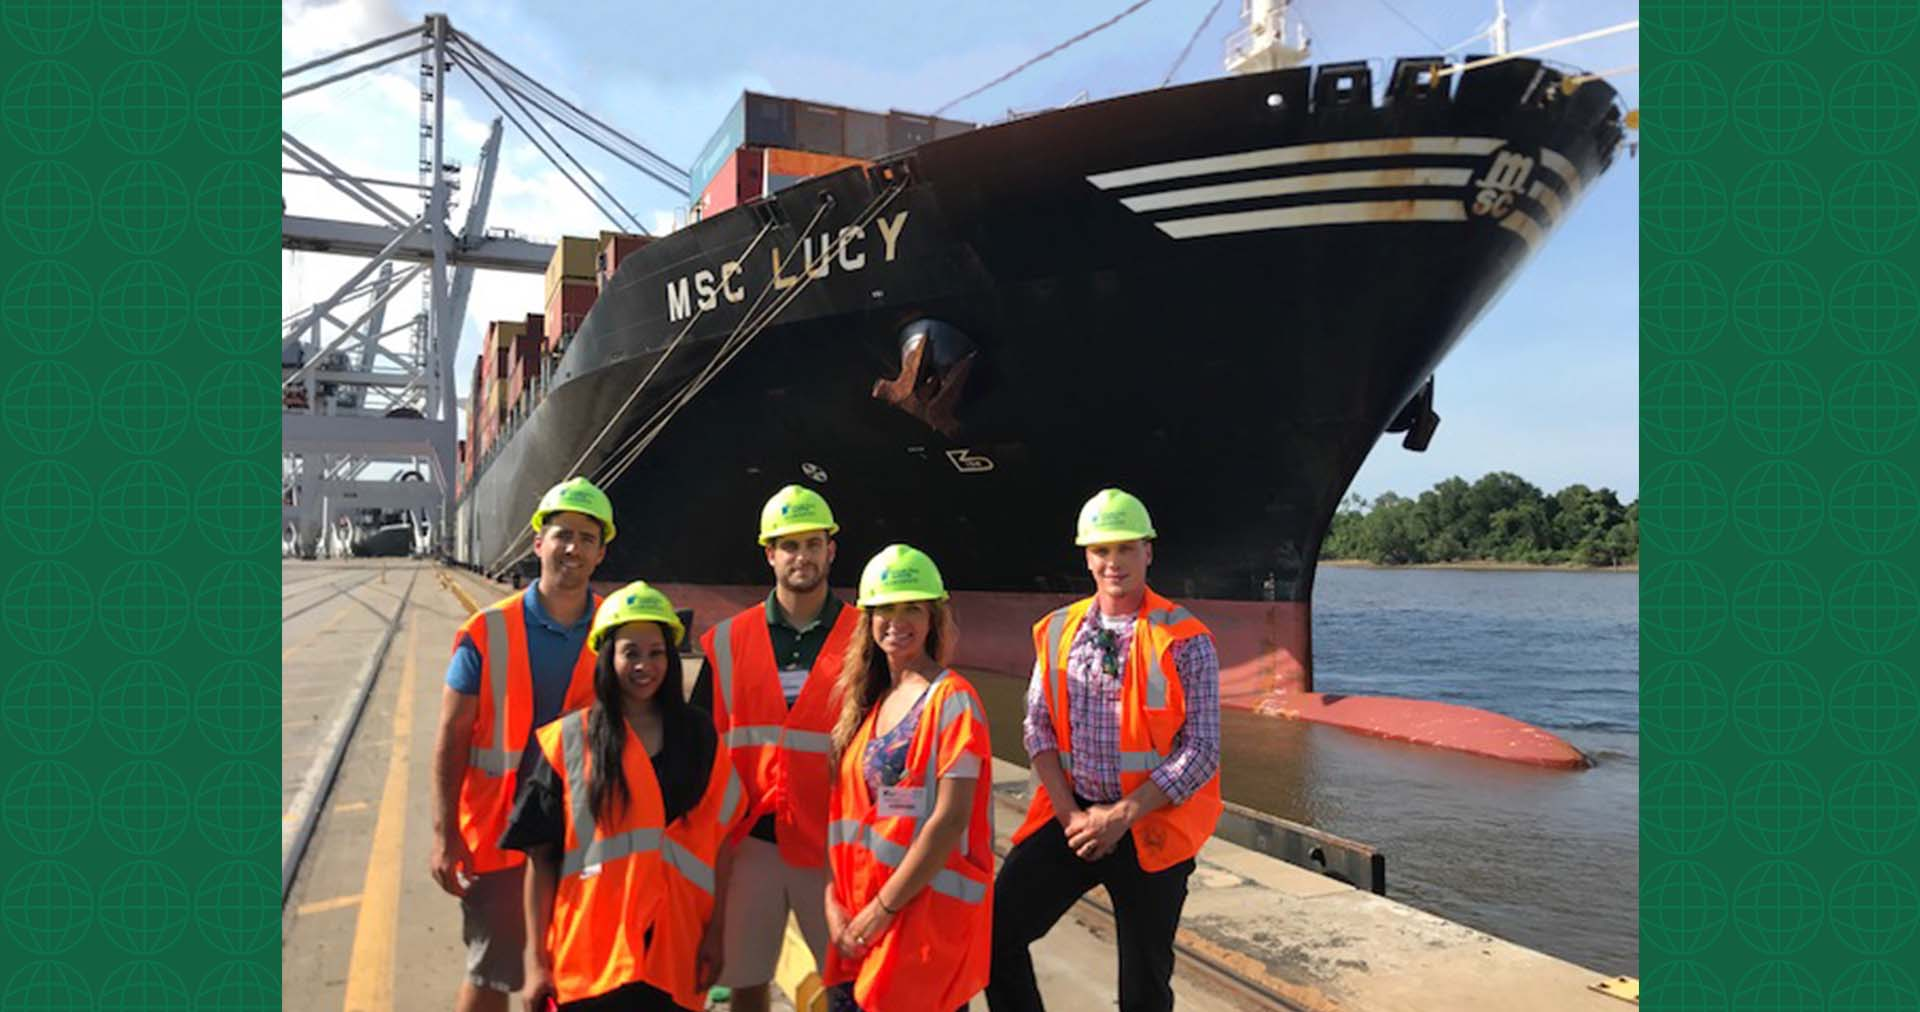 UWL Employees pose in front of the container vessel MSC Lucy at the Port of Savannah. From left to right: Johnny Maiden, Latesha Mosley, Dave Pycraft (Company Tour Guide), Adrienne Parrish, Tino Nieves.